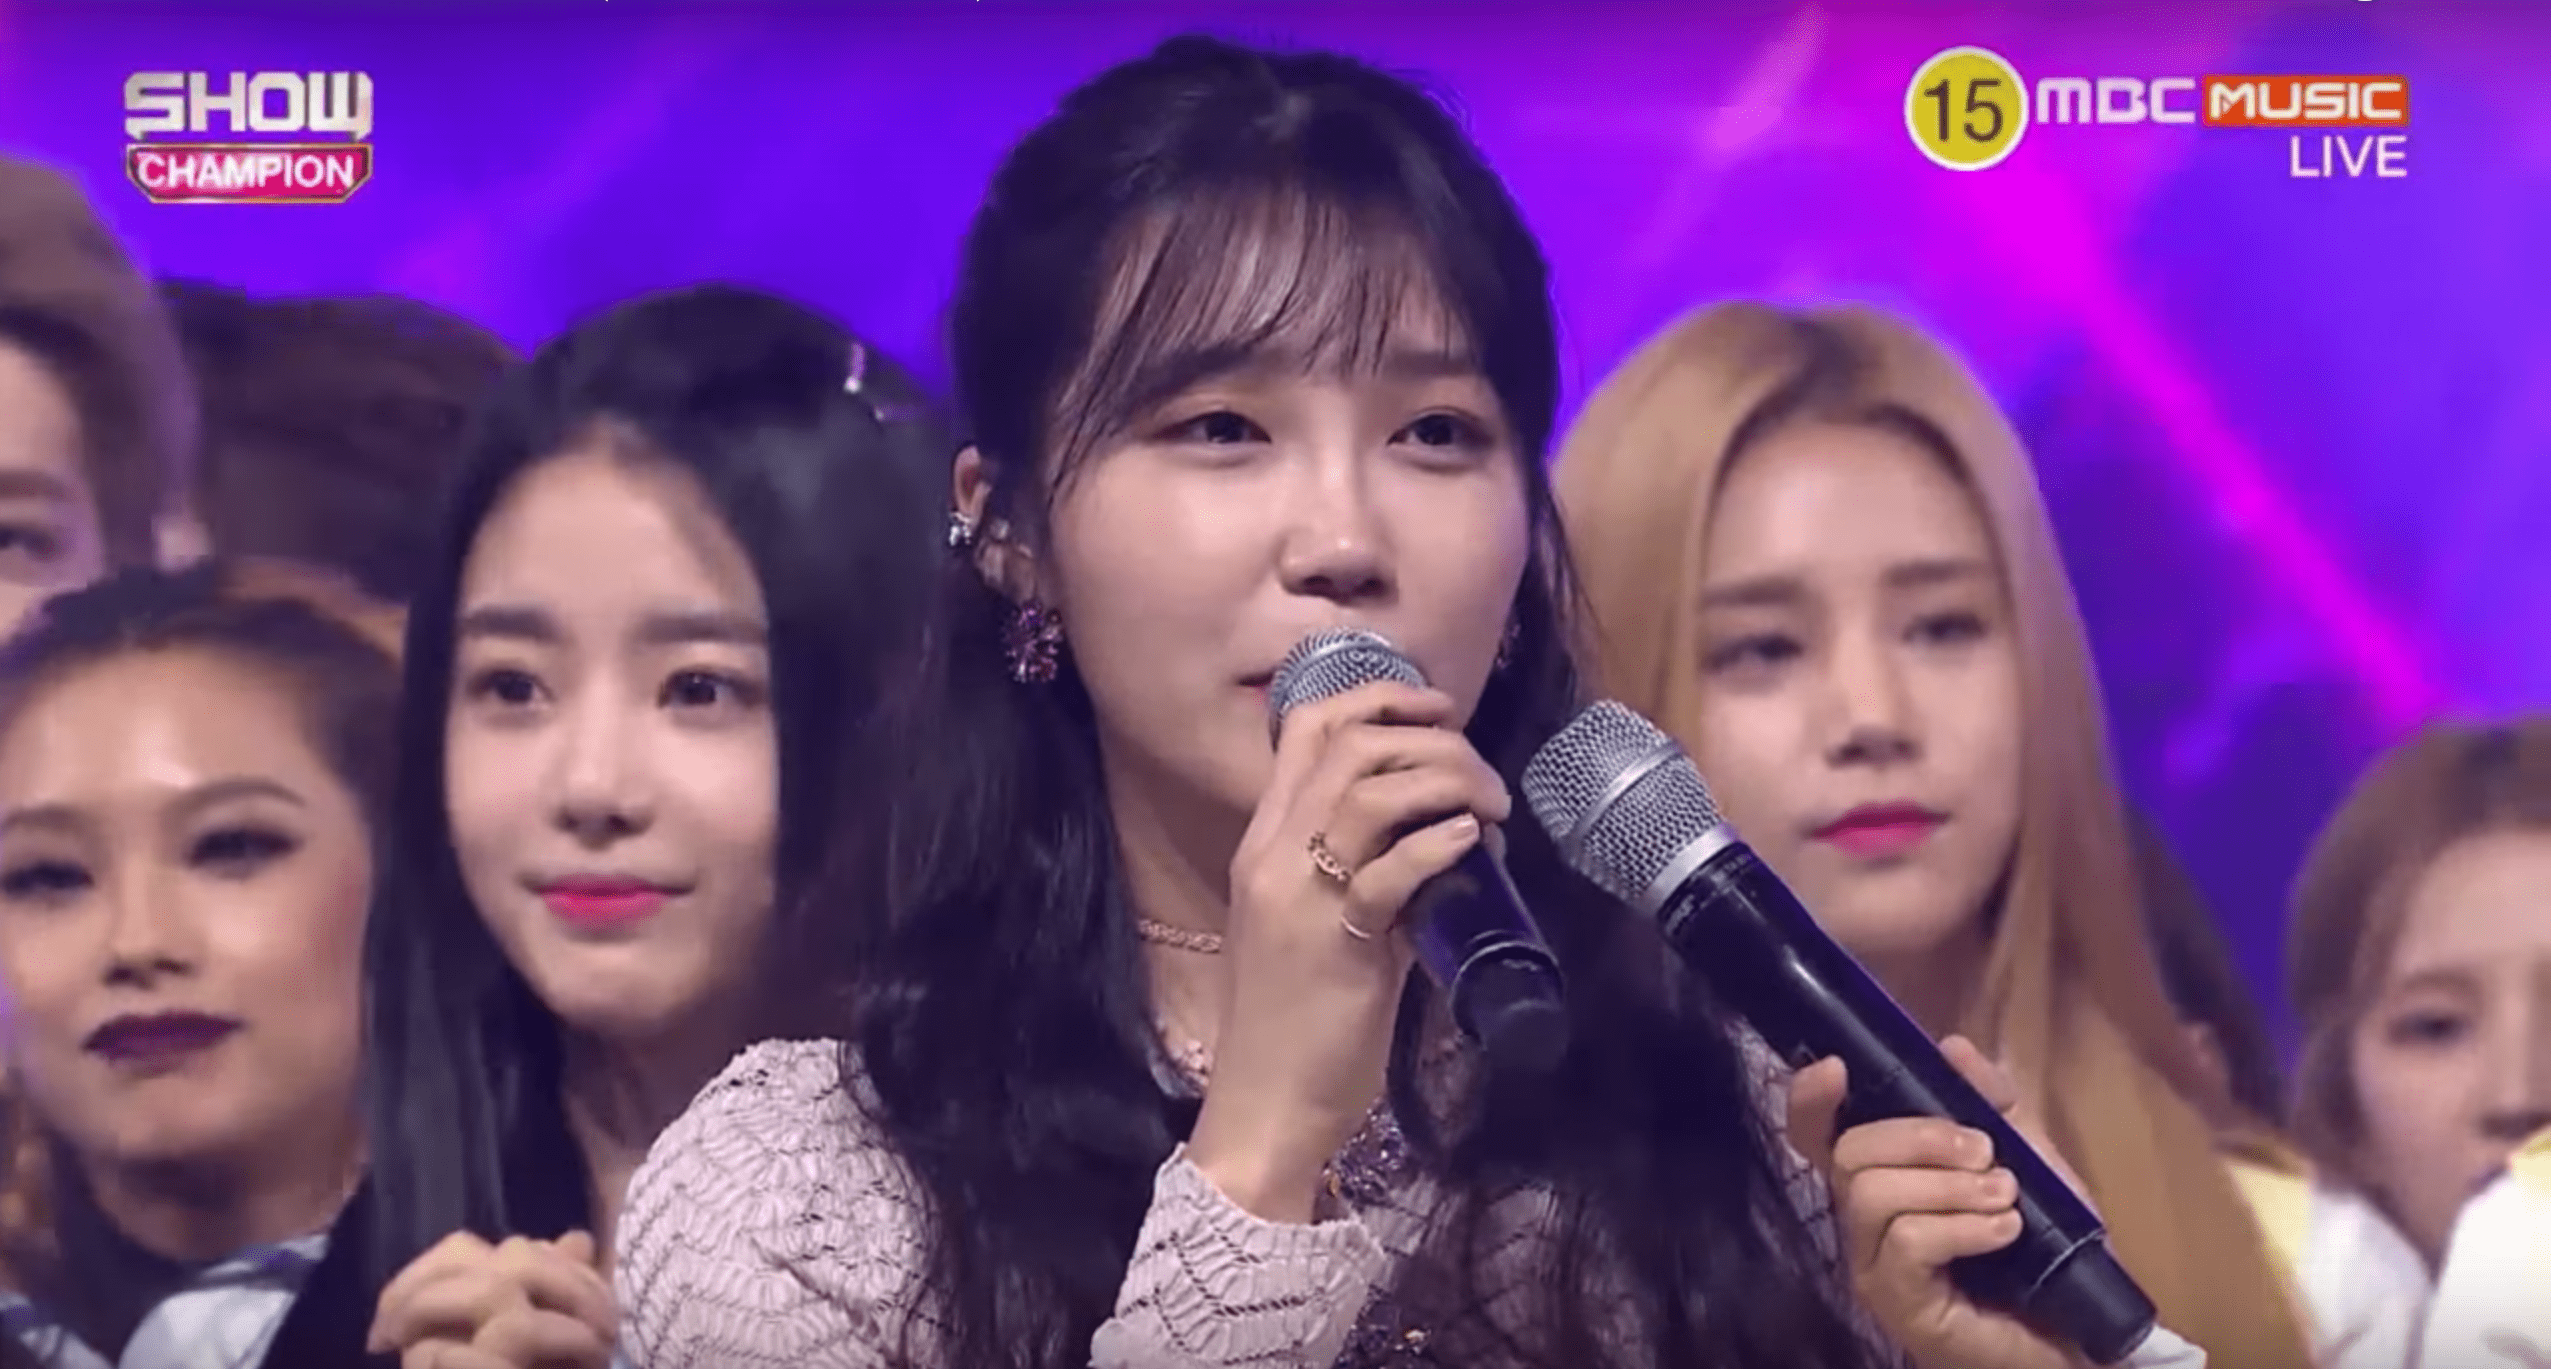 Watch: Jung Eun Ji Takes 2nd Win For The Spring On Show Champion, Performances By Gong Minzy, EXID, LABOUM, And More